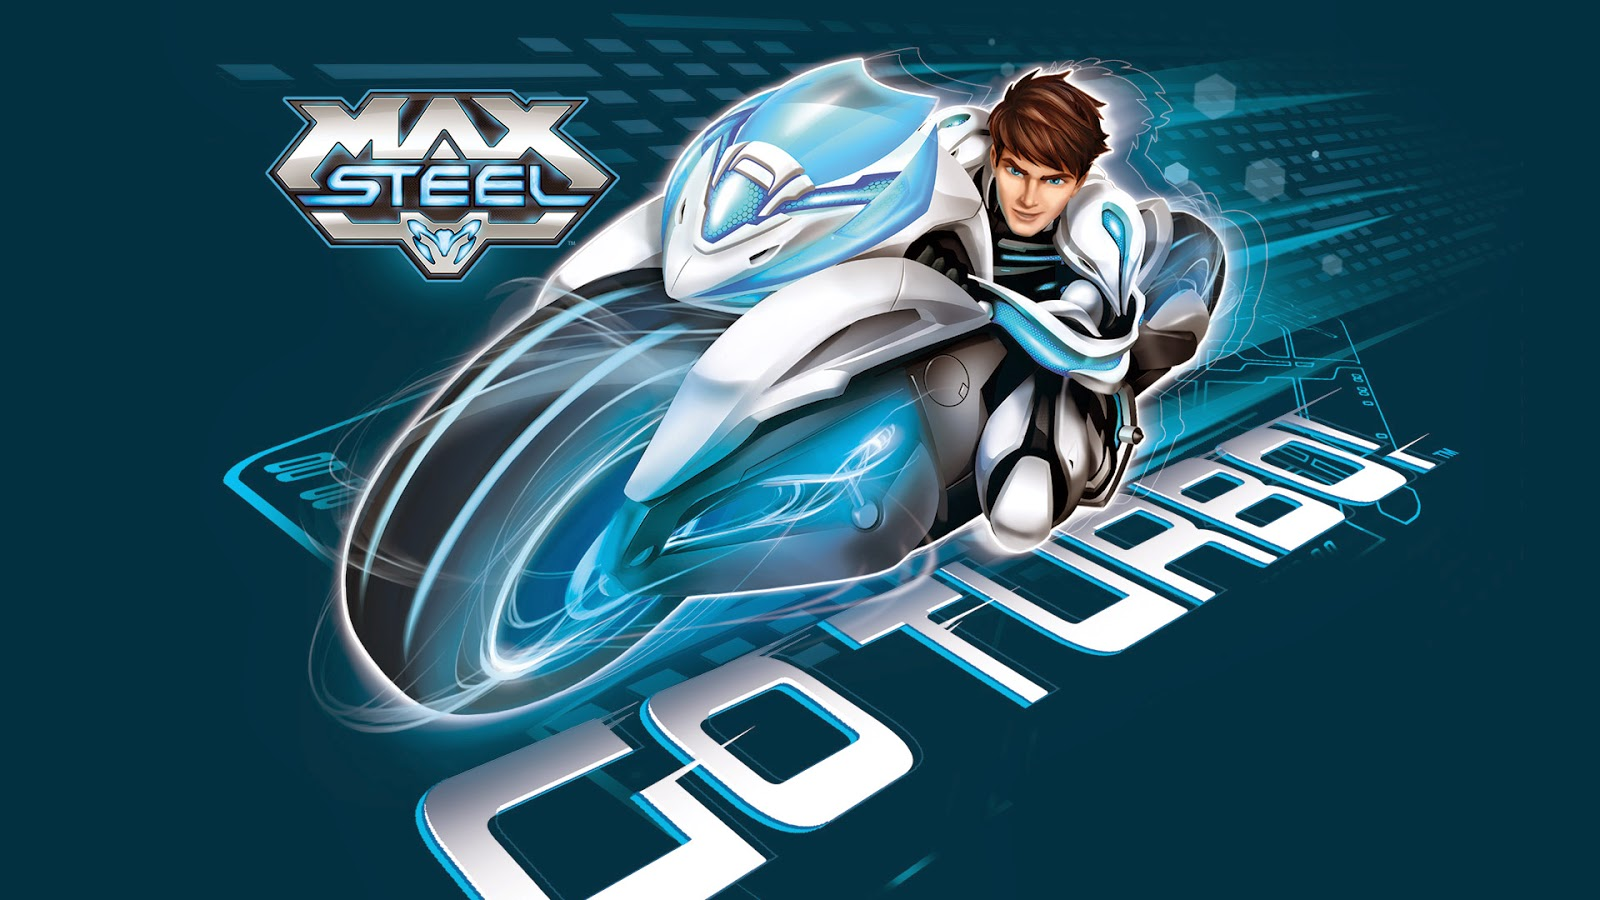 Max Steel v1.4.0 APK+DATA (Unlimited Chips)